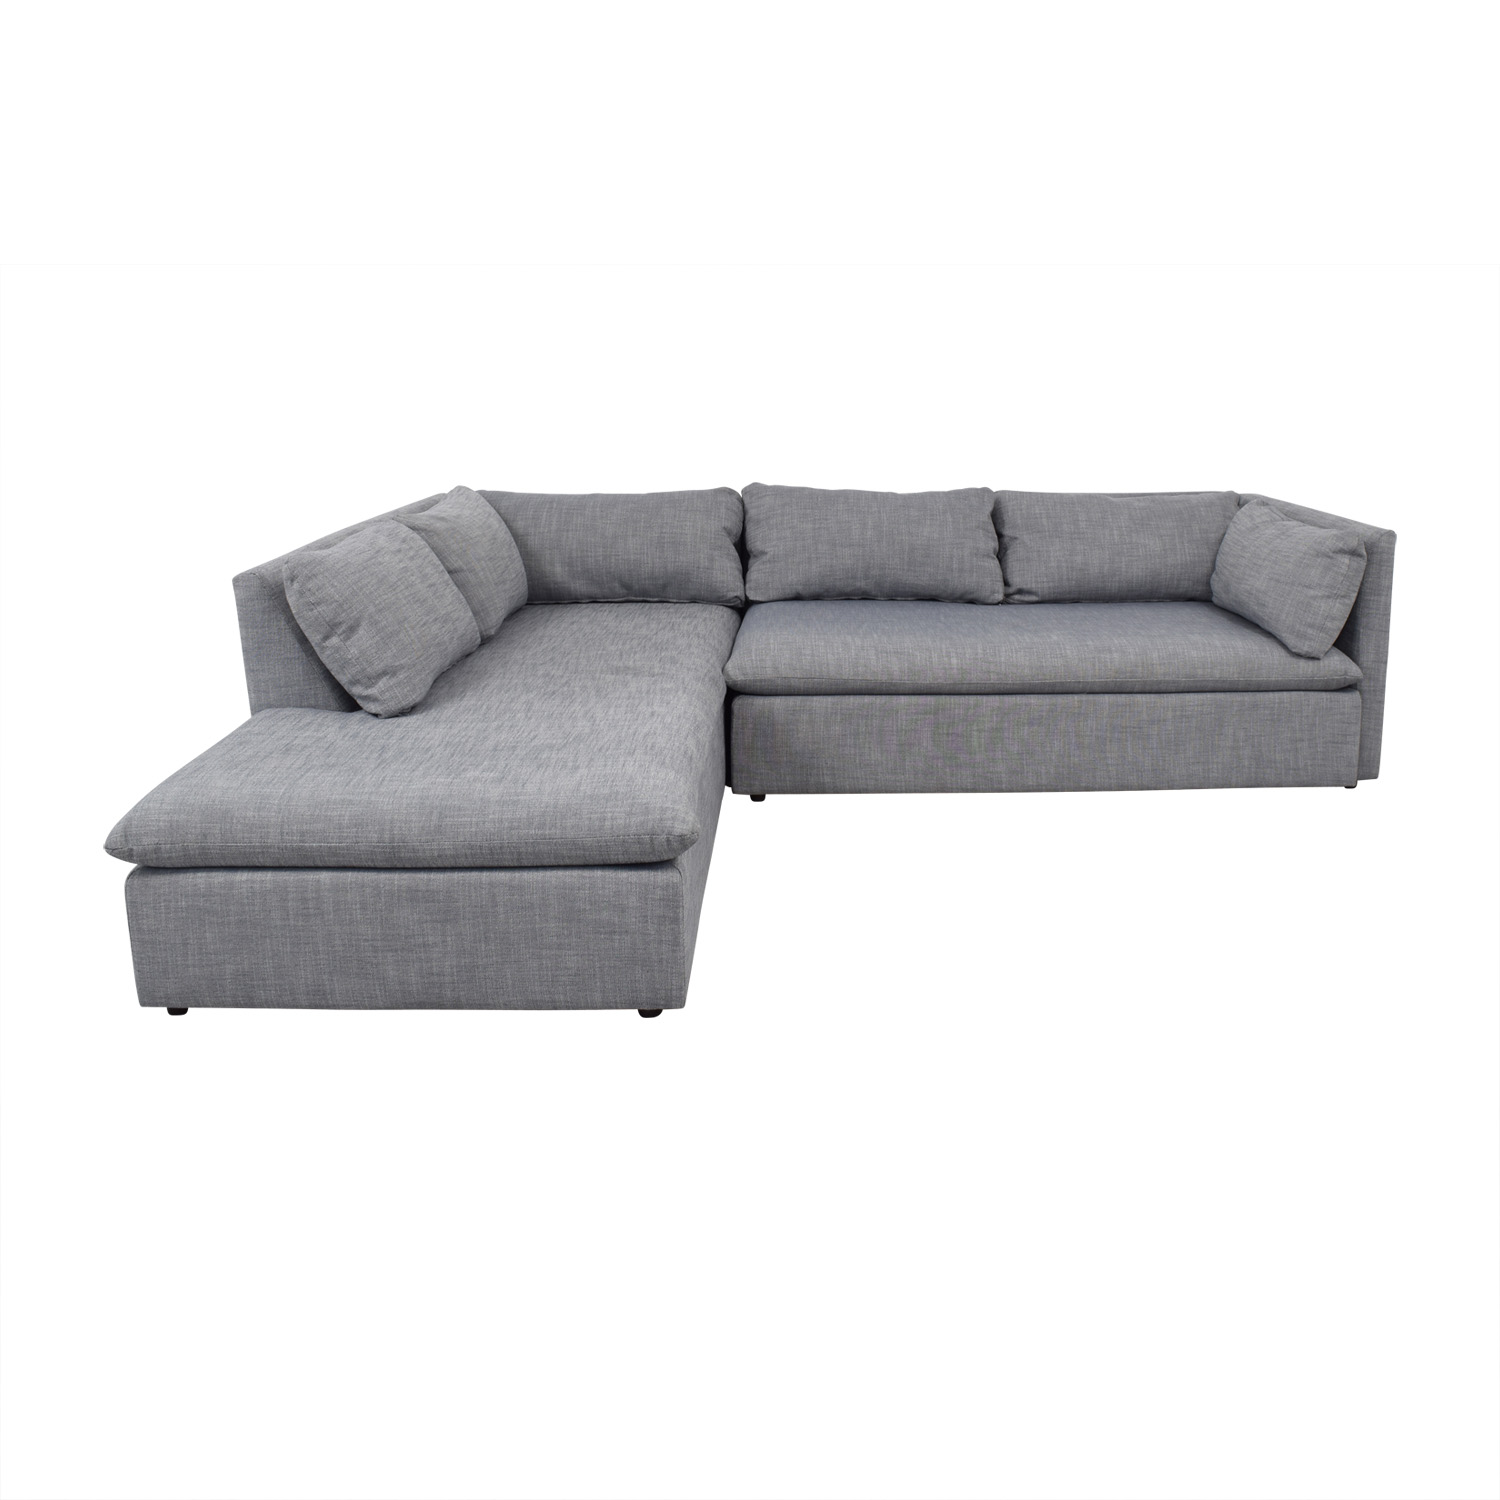 West Elm West Elm Shelter Sectional discount